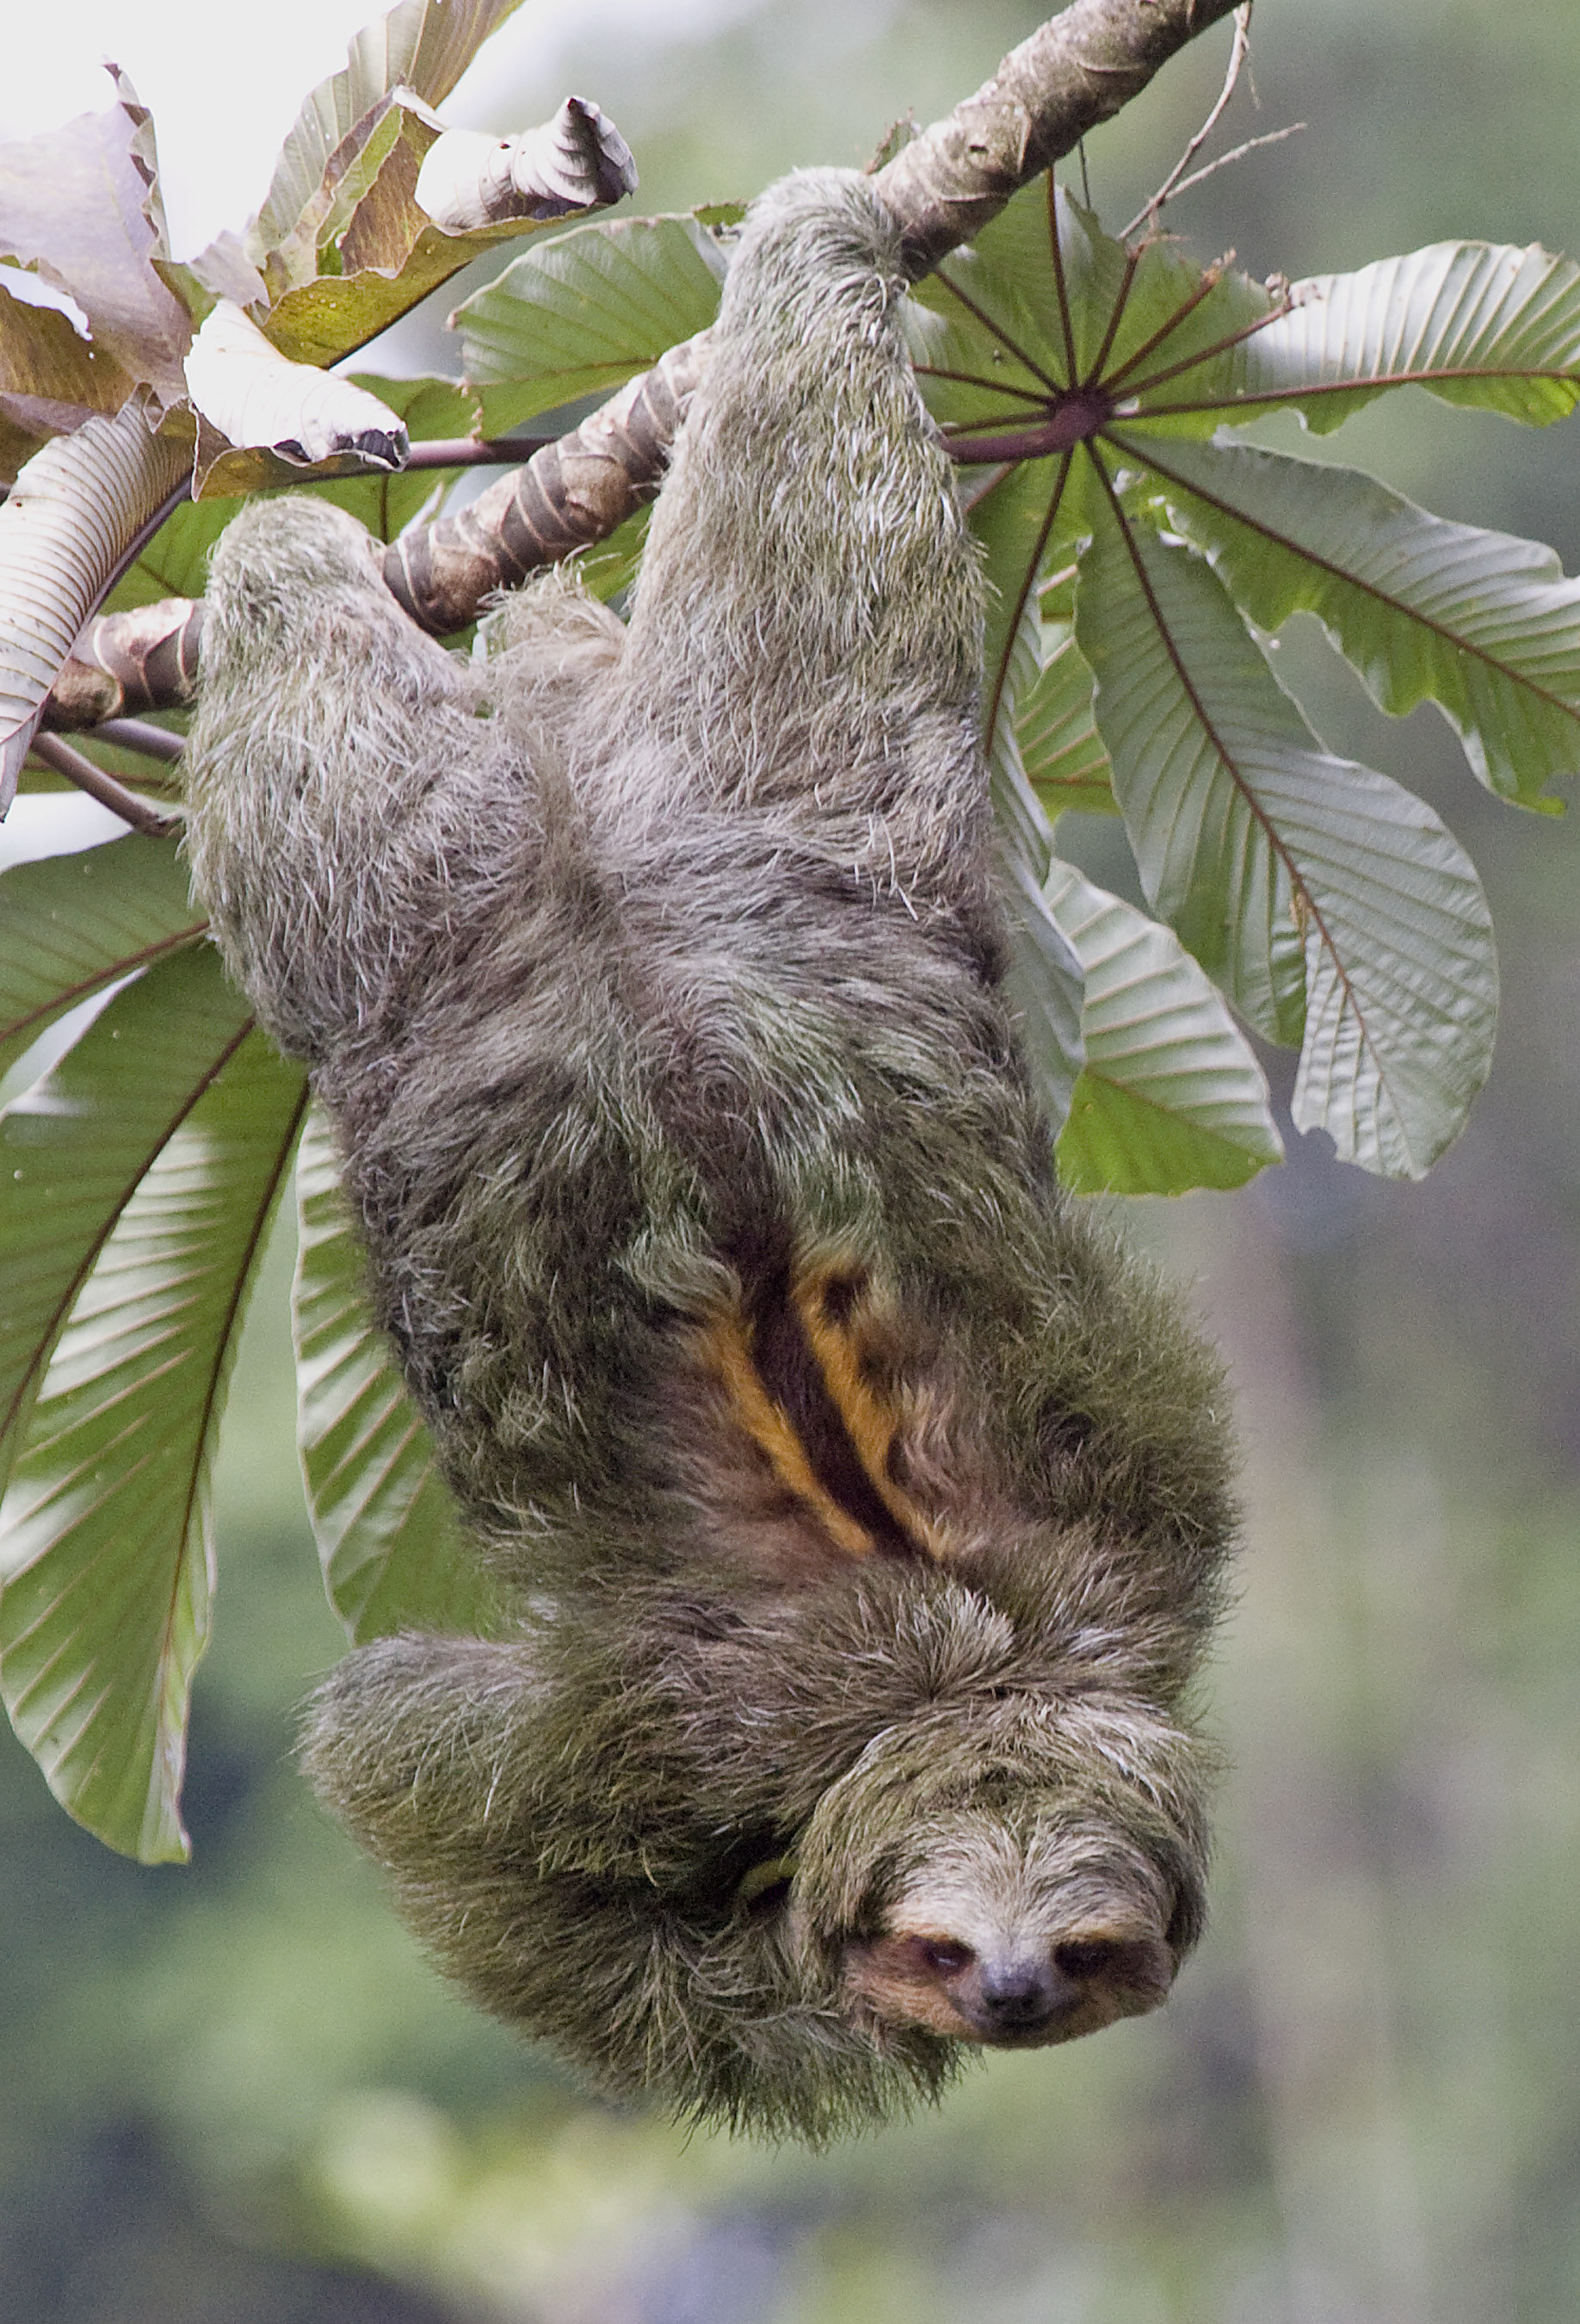 the three toed sloth essay Of the two families of sloths found in costa rica, the bradypus variegatus (three-fingered sloth) is the more familiar to most people—like our buttercup.